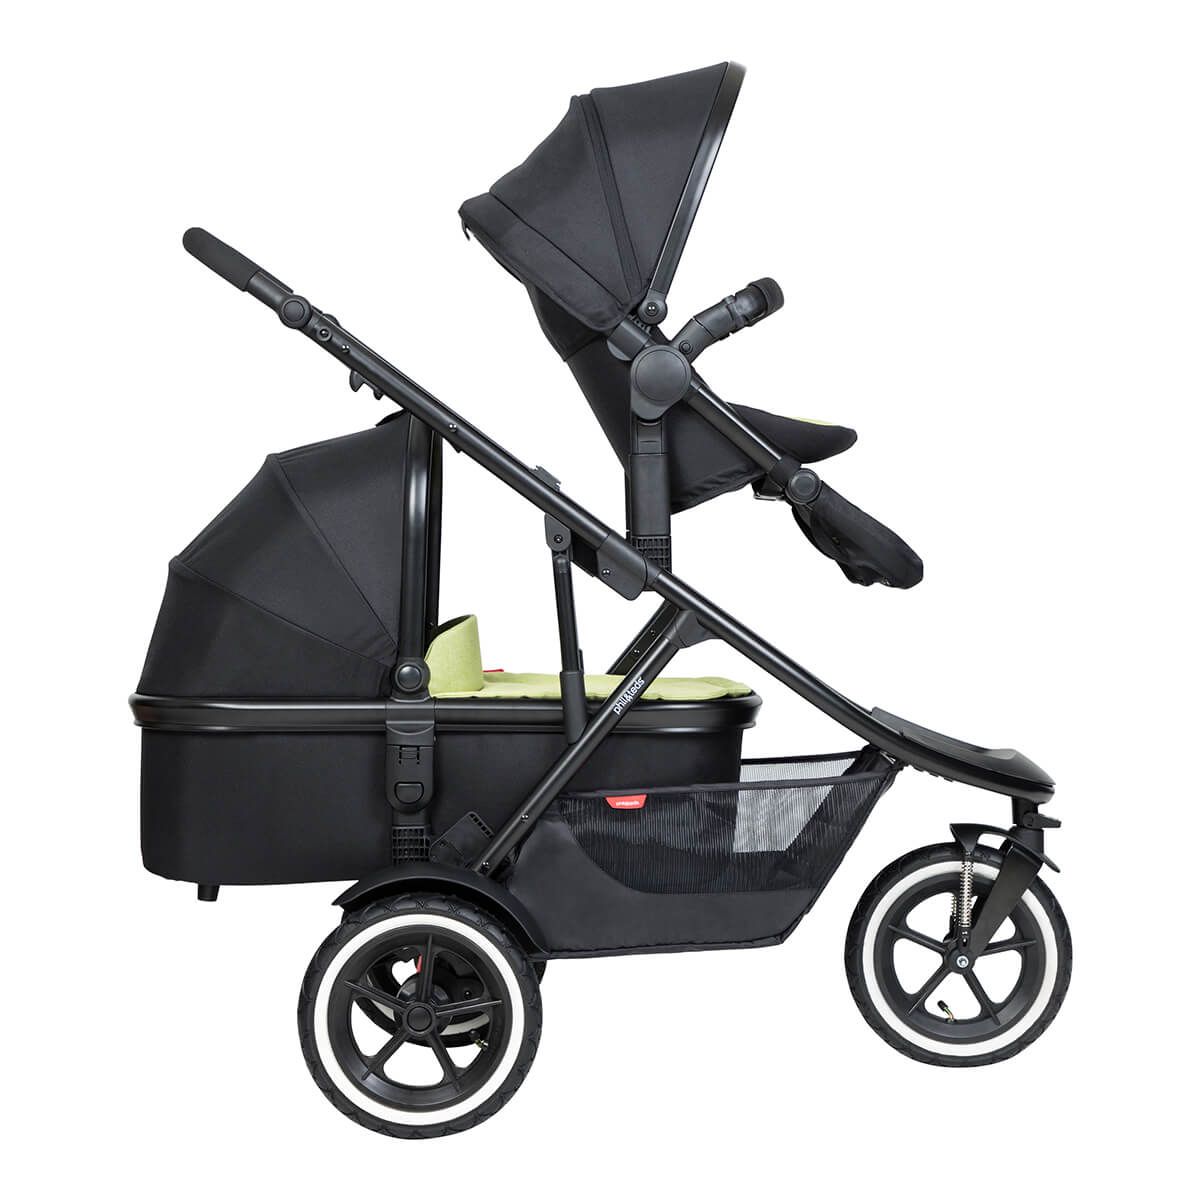 https://cdn.accentuate.io/4513463238752/19440099688632/philteds-sport-buggy-with-double-kit-extended-clip-and-snug-carrycot-side-view-v1626486627226.jpg?1200x1200